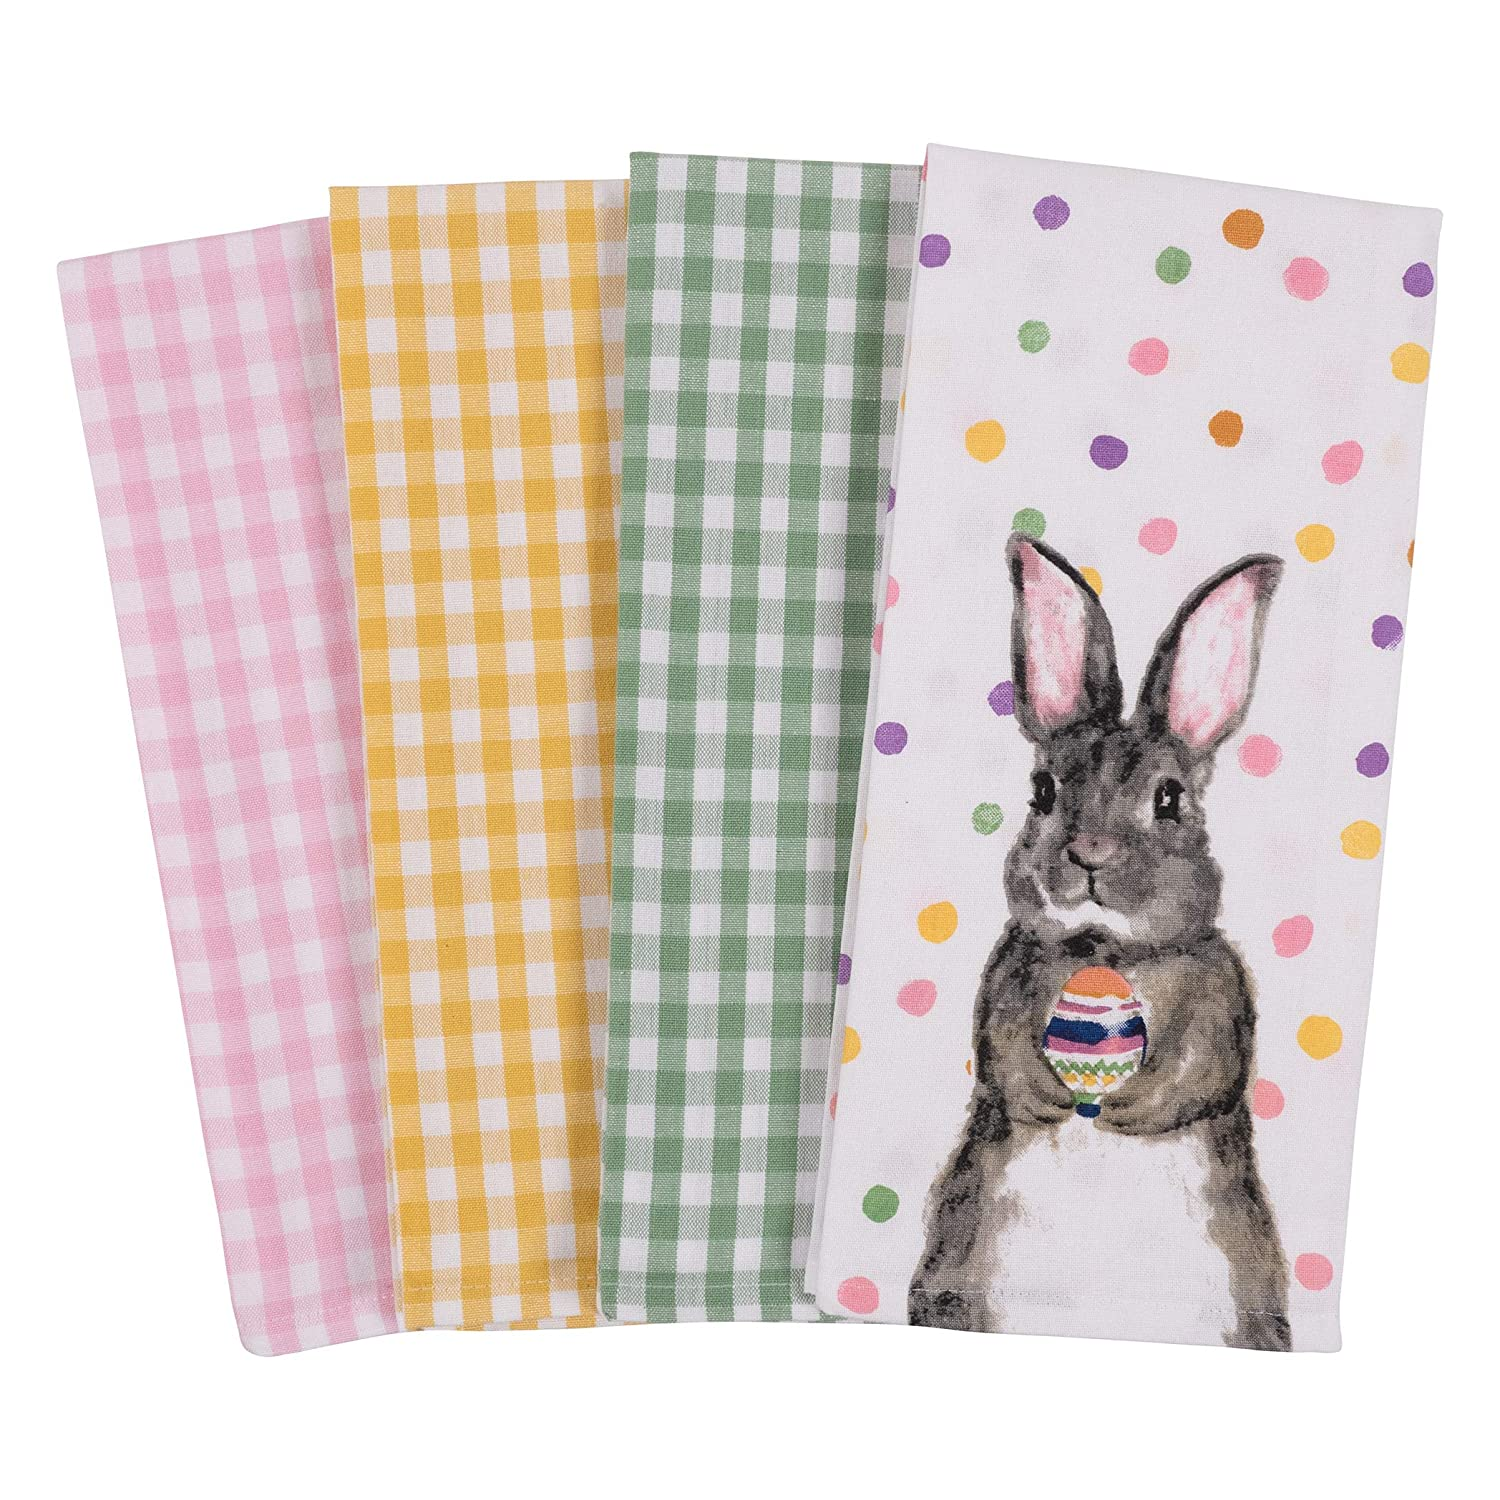 KAF Home Pantry Kitchen Holiday Dish Towel Set of 4, 100-Percent Cotton, 18 x 28-inch (Easter Egg Bunny)